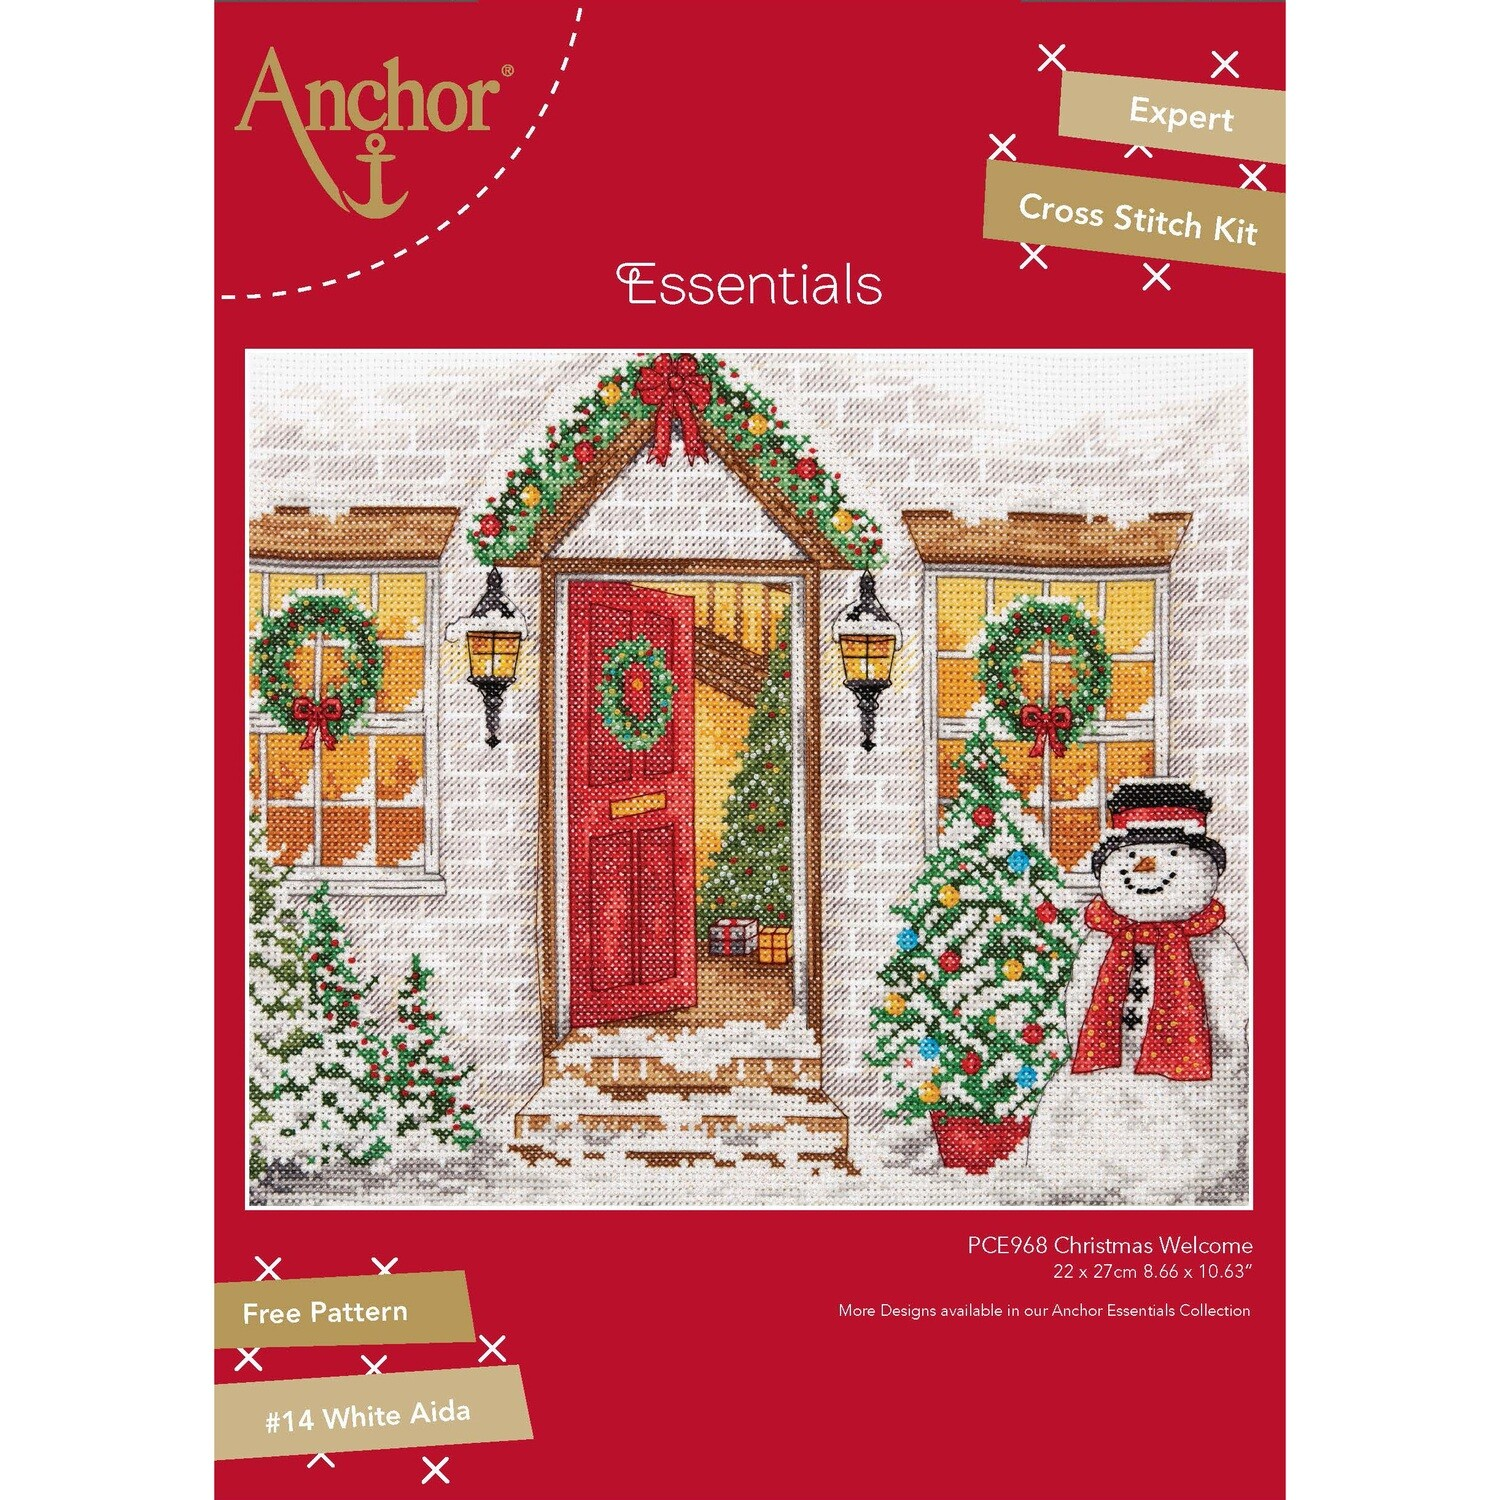 Anchor Essentials Cross Stitch Kit - Christmas Welcome